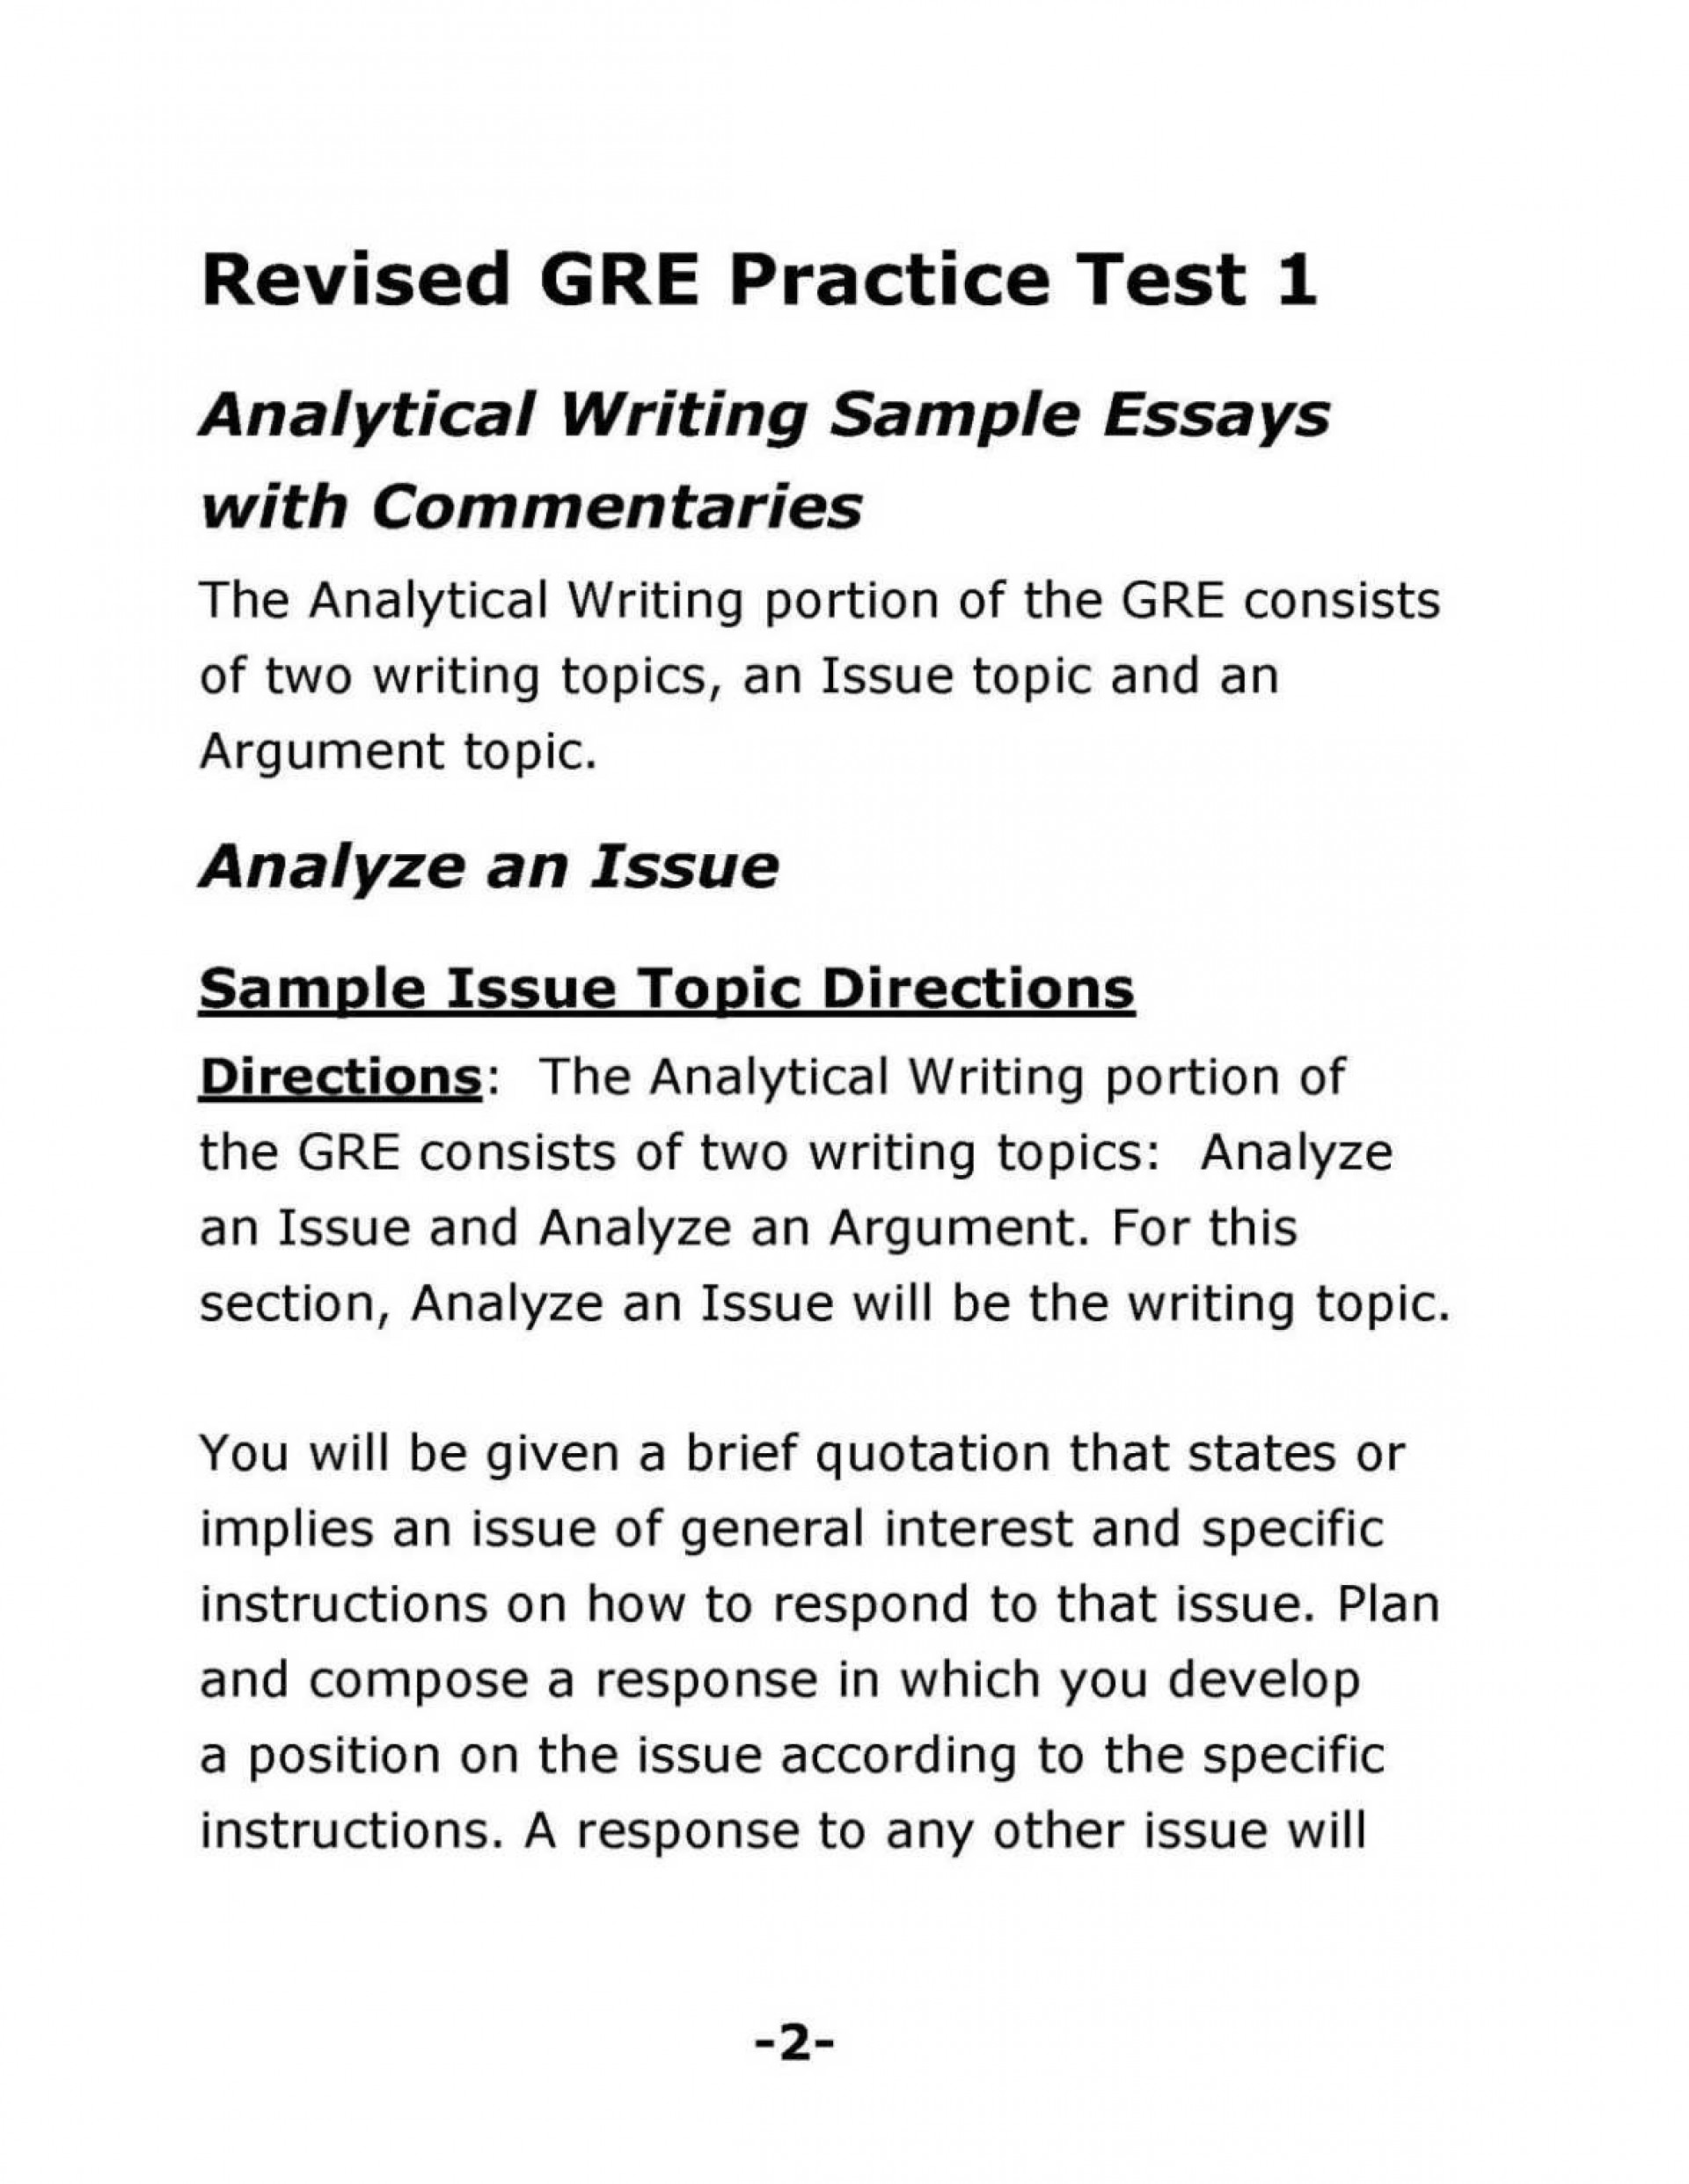 006 Essay Example Biodiversity Topics Special Wallpapers Gre Good Score Bio Diversity About On With Awa Examples Pdf Topic Issue To Use Ets Phenomenal Questions 1920